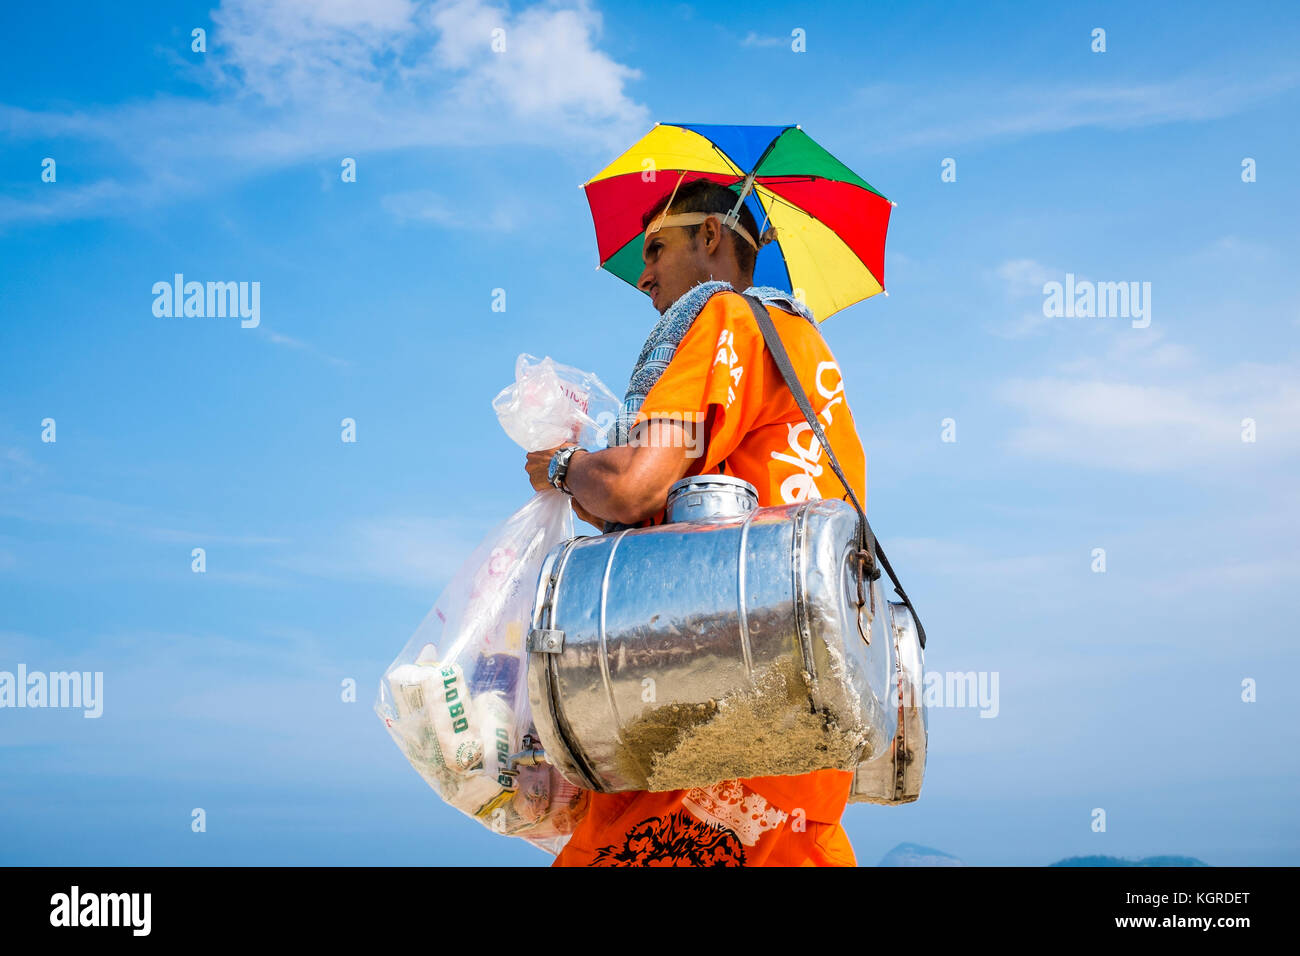 RIO DE JANEIRO - MARCH 30, 2016: Brazilian beach vendor selling South American mate tea walks in uniform with a - Stock Image